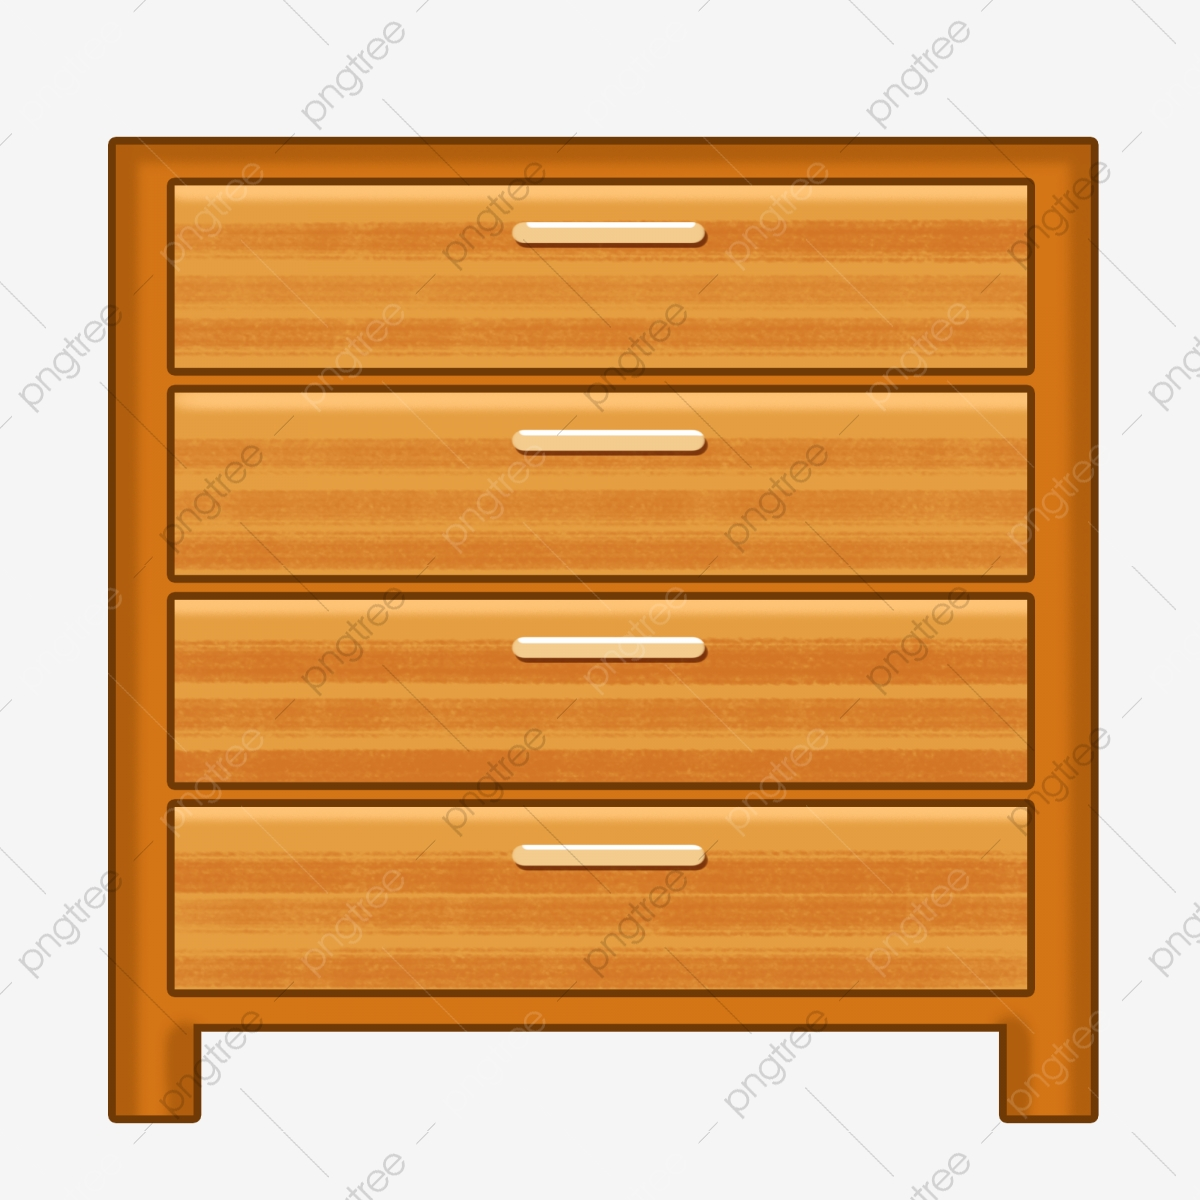 Wooden Cabinet Cartoon Illustration Cabinet Four Drawers Wooden Cabinet Png Transparent Clipart Image And Psd File For Free Download